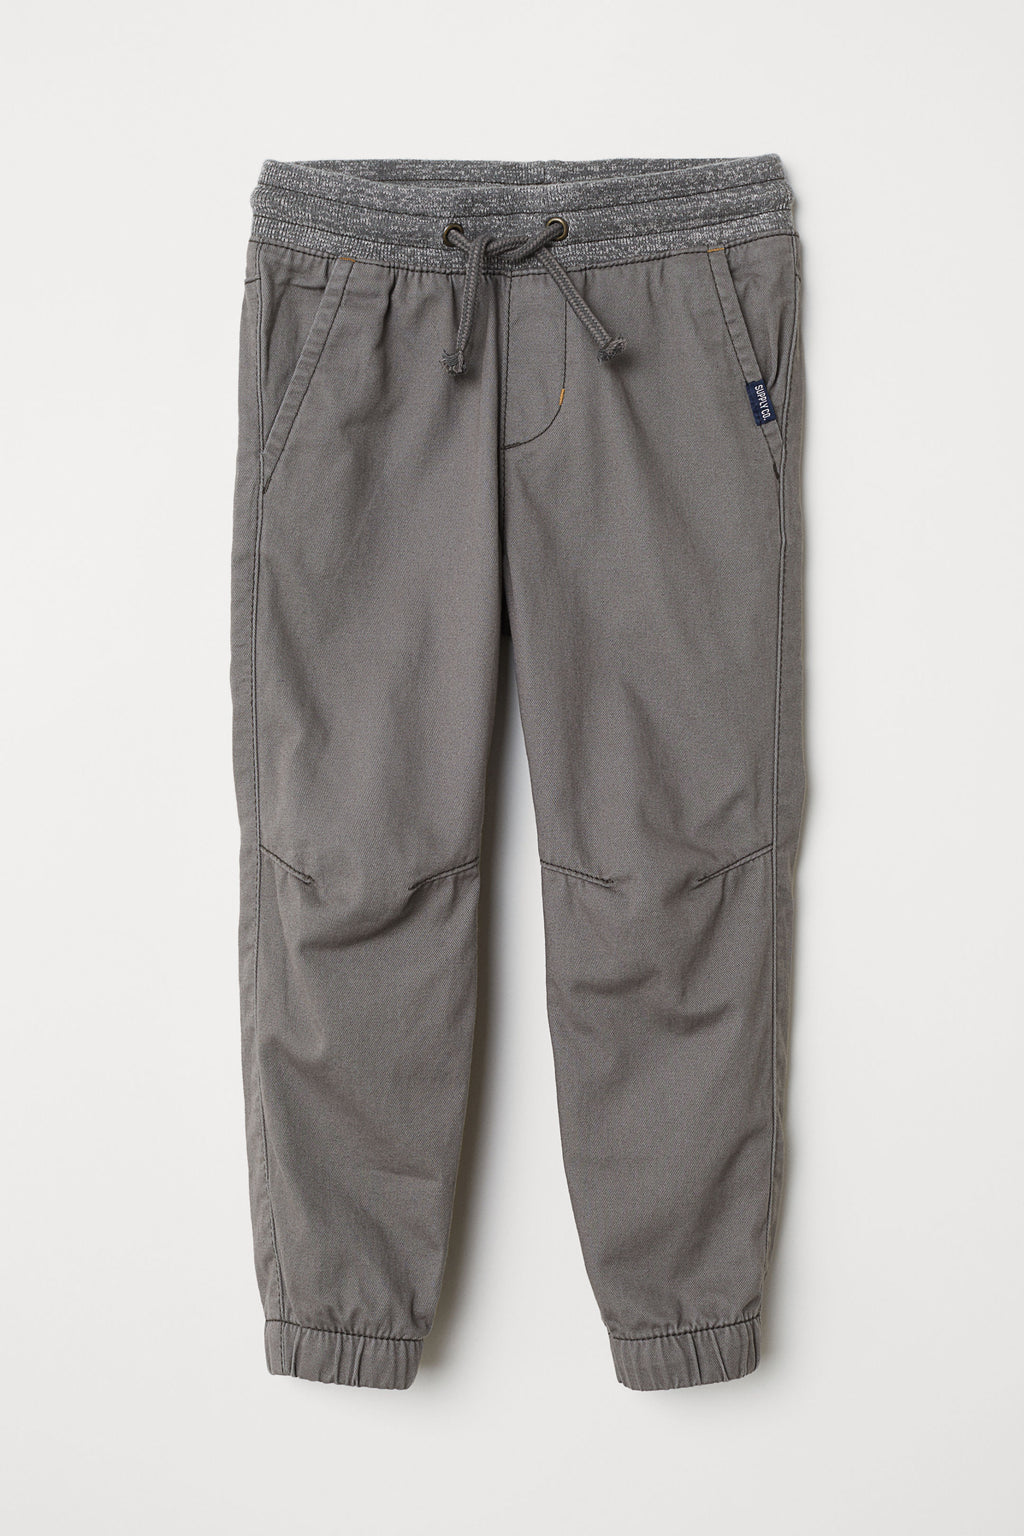 Pantalon Joggers H&M Cotton Pull-on Pants